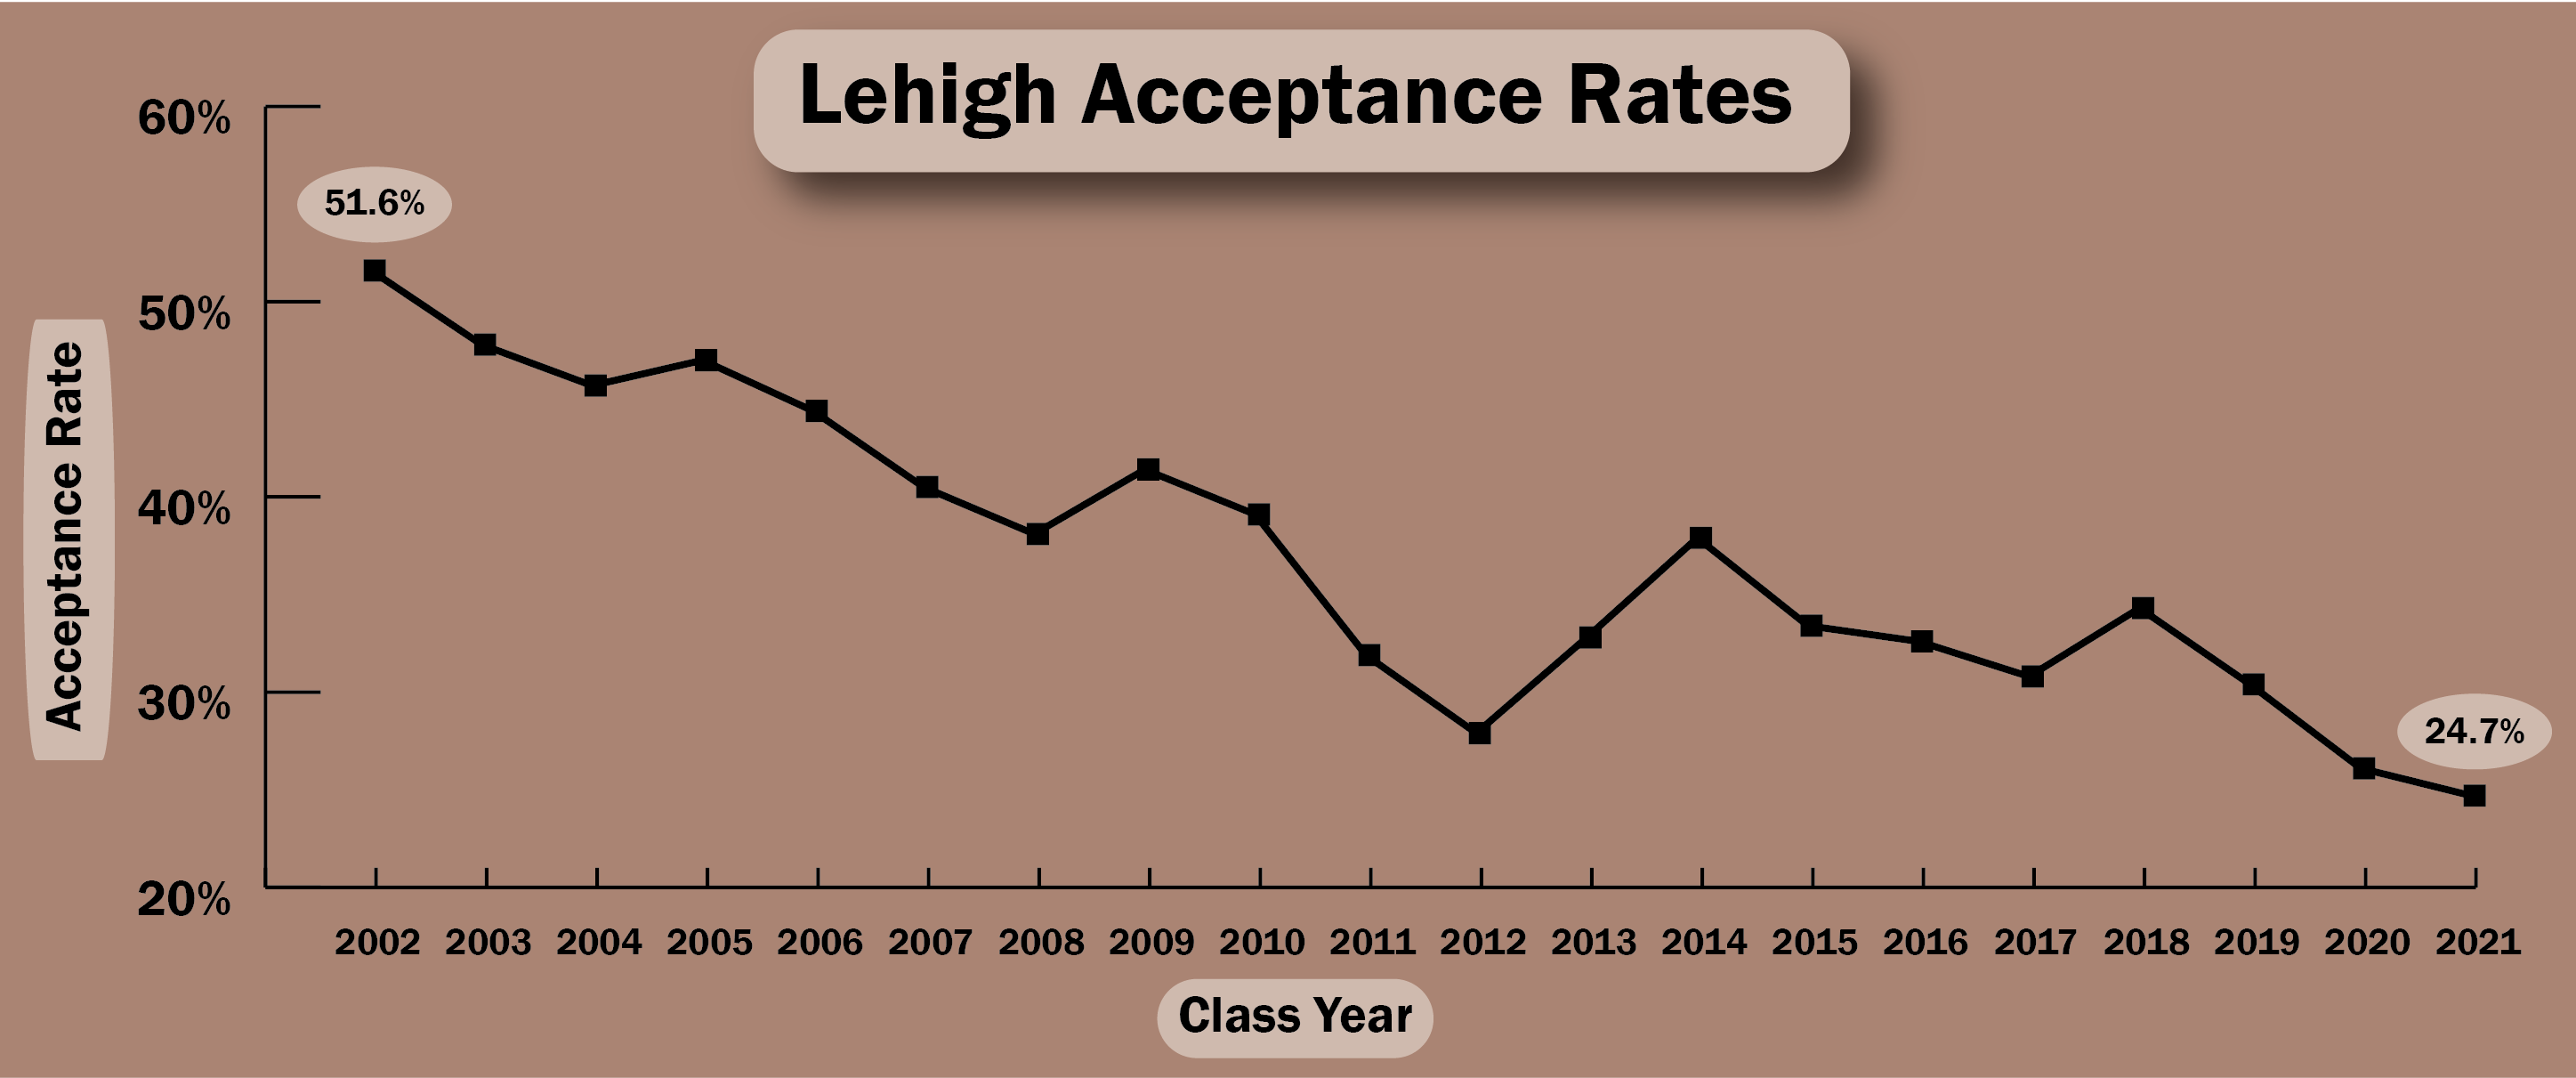 lehigh acceptance rate at an all time low the brown and white